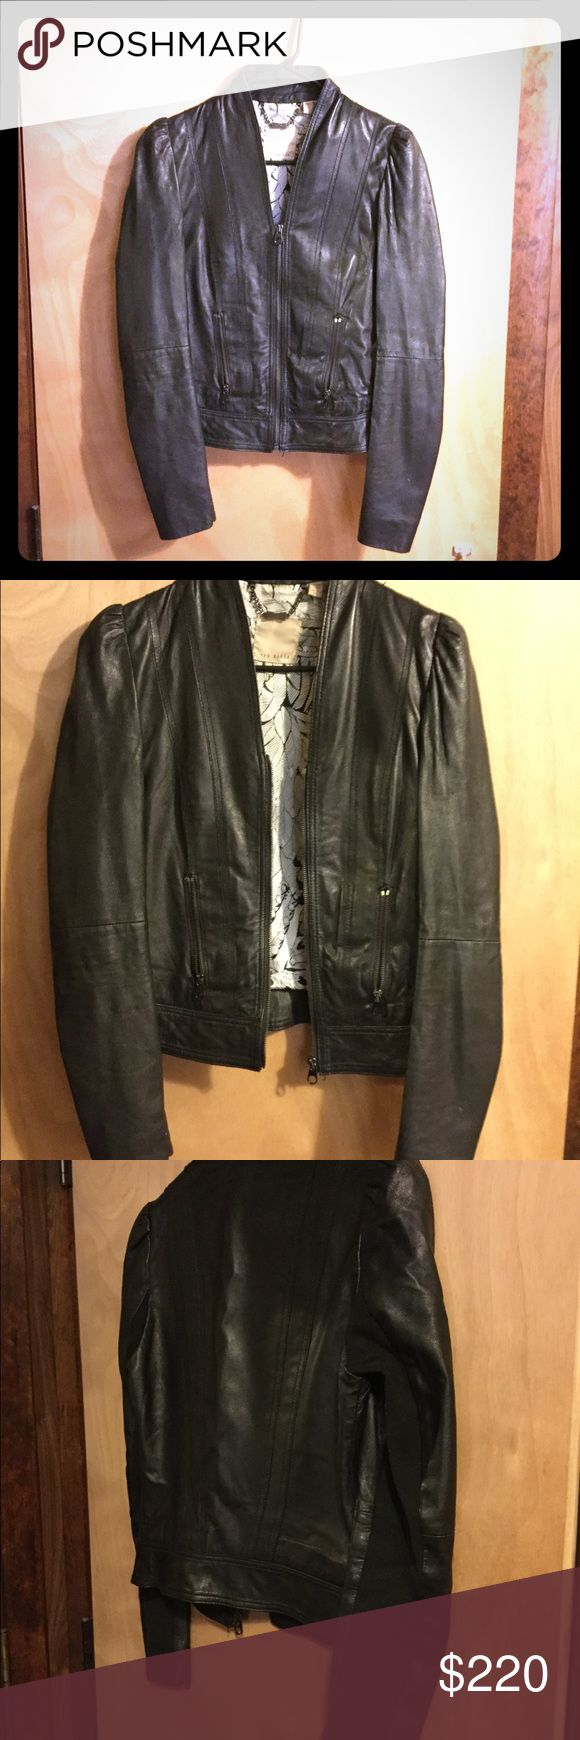 Ted Baker Leather Jacket Gorgeous Ted Baker Leather Jacket in Great Condition Small Tear on Sleeve  Make an Offer! Ted Baker Jackets & Coats